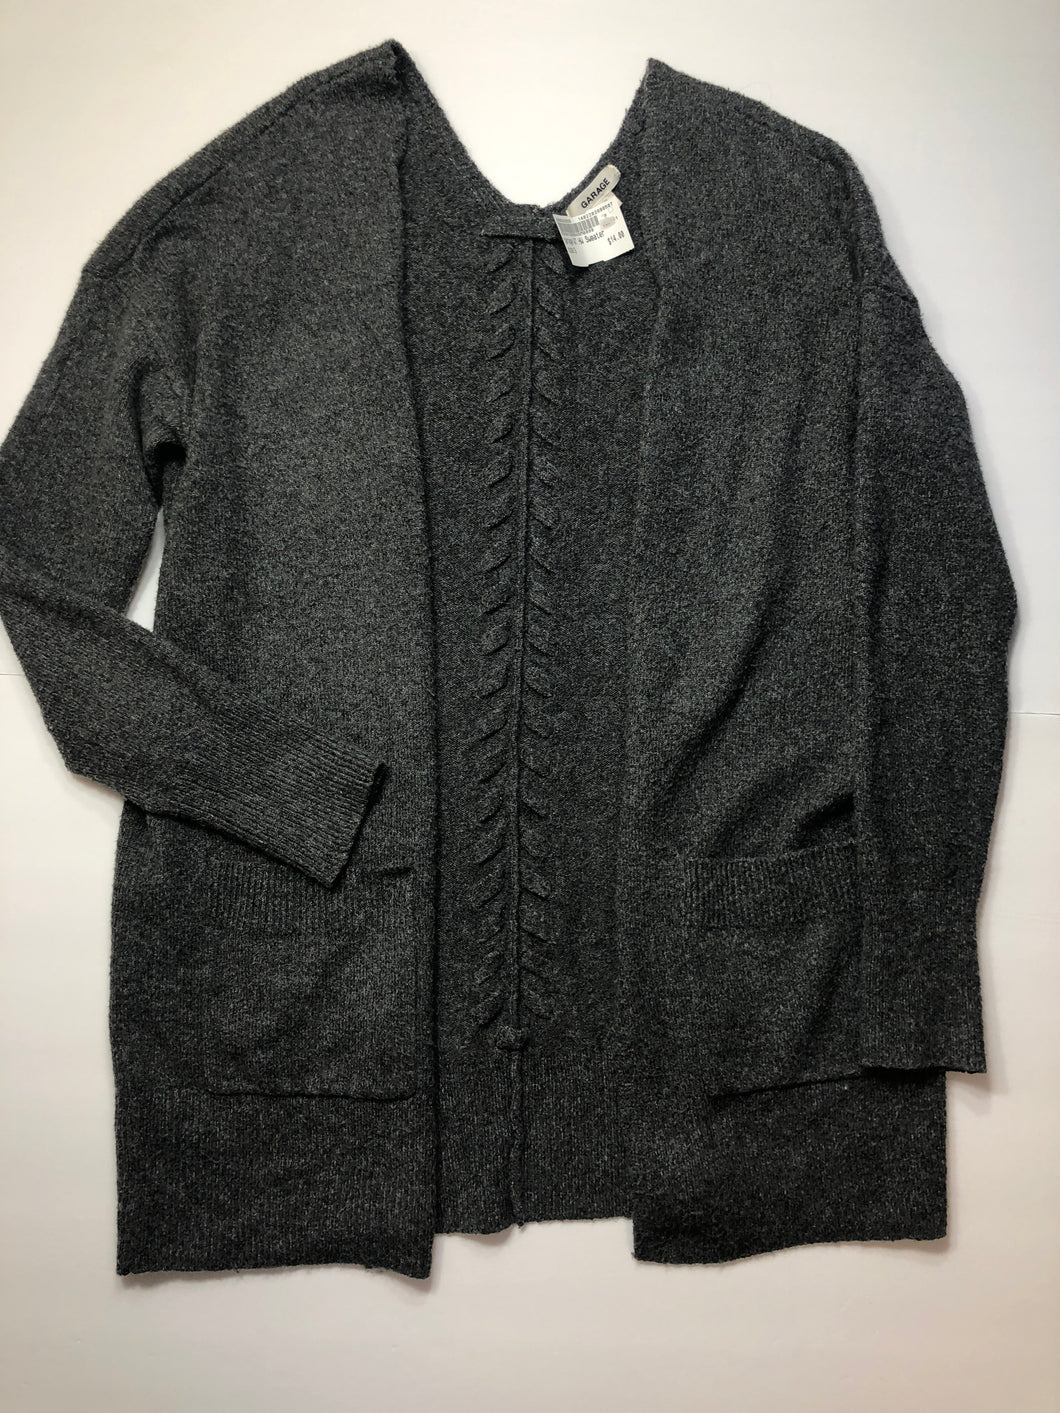 Gently Used Women's Garage Cardigan Size S